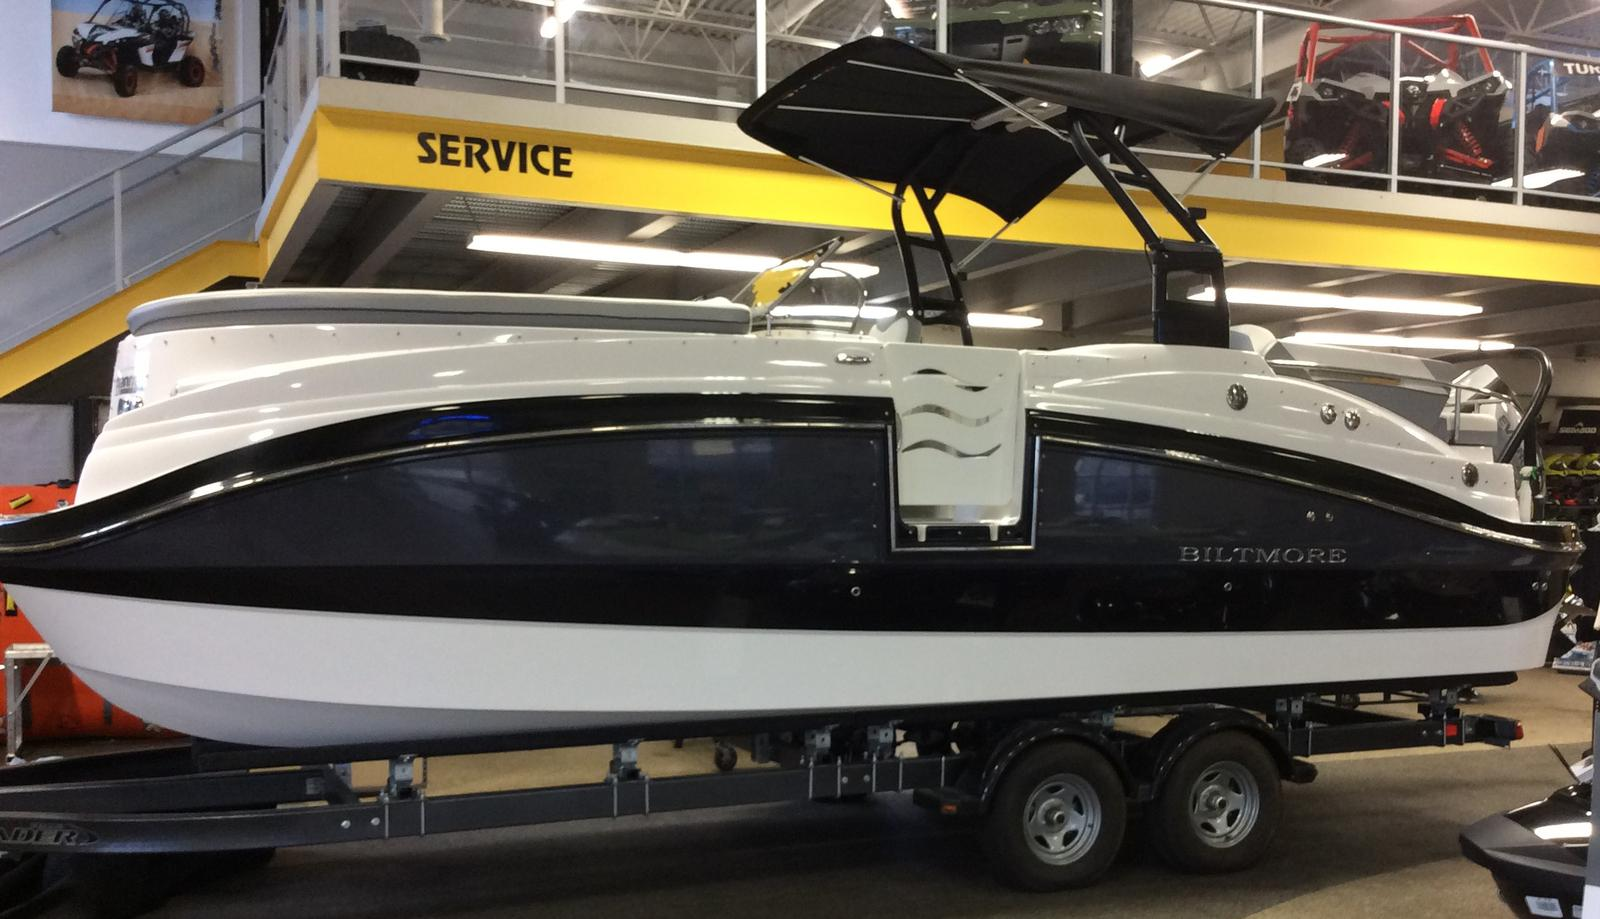 For Sale: 2016 Biltmore 5 Series - Demo ft<br/>Banner Recreation Products